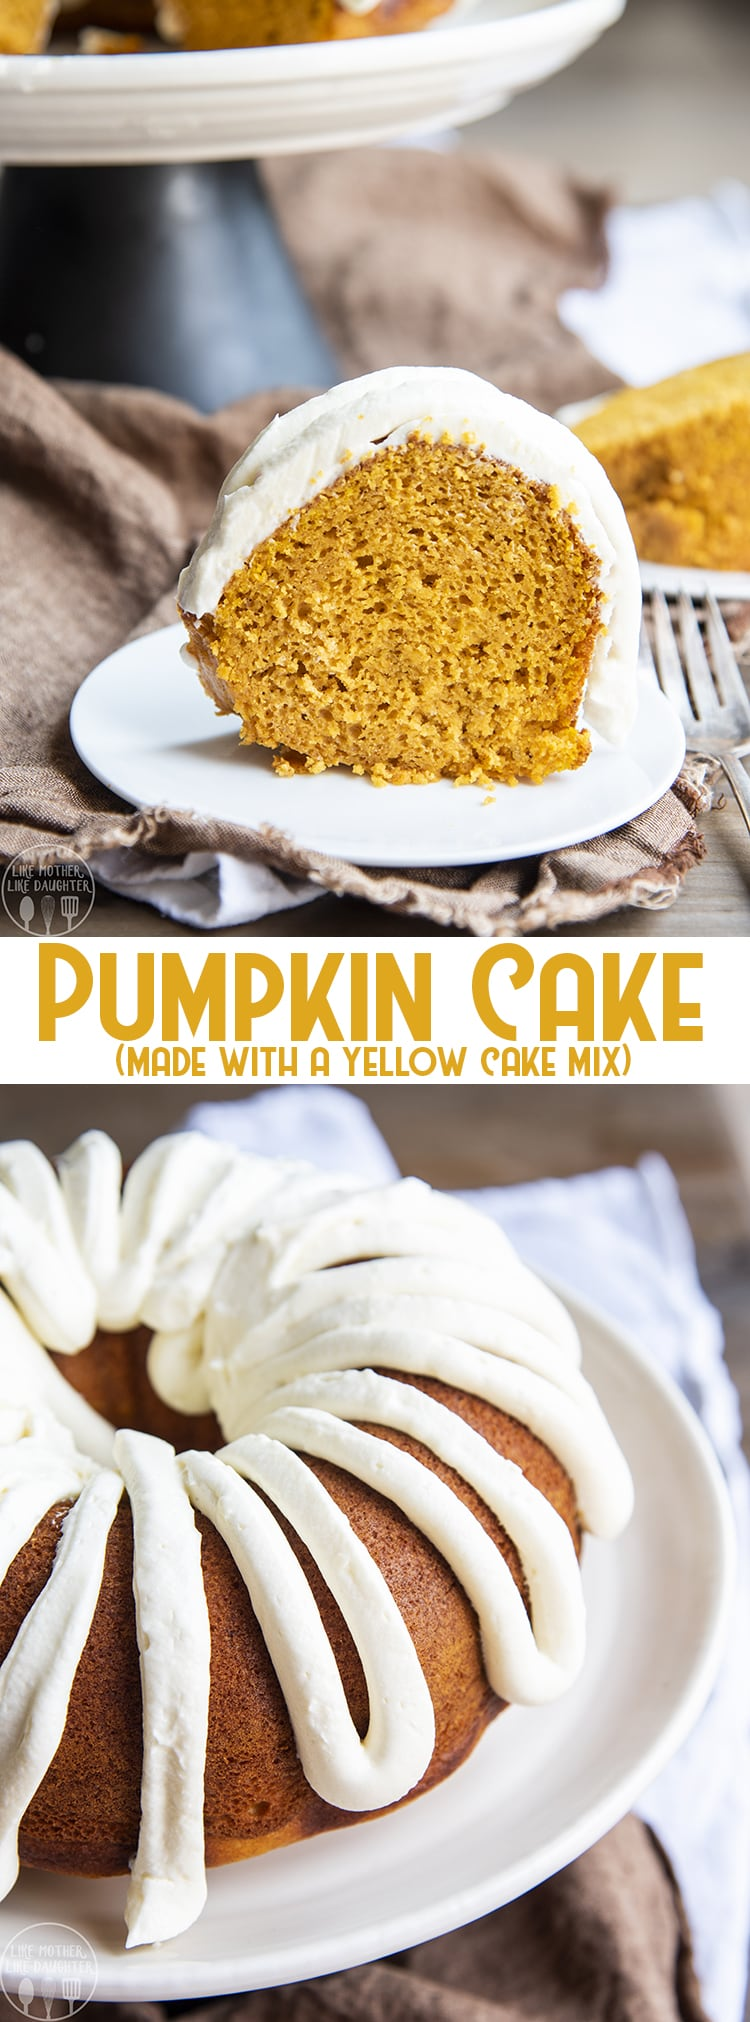 This pumpkin cake with a cake mix is the easiest way to make a pumpkin cake starting with a yellow cake mix! It's great baked as a 9x13 pan, 10 inch bunt, or round cake. Top it with your favorite cream cheese frosting and you've got a killer pumpkin dessert!